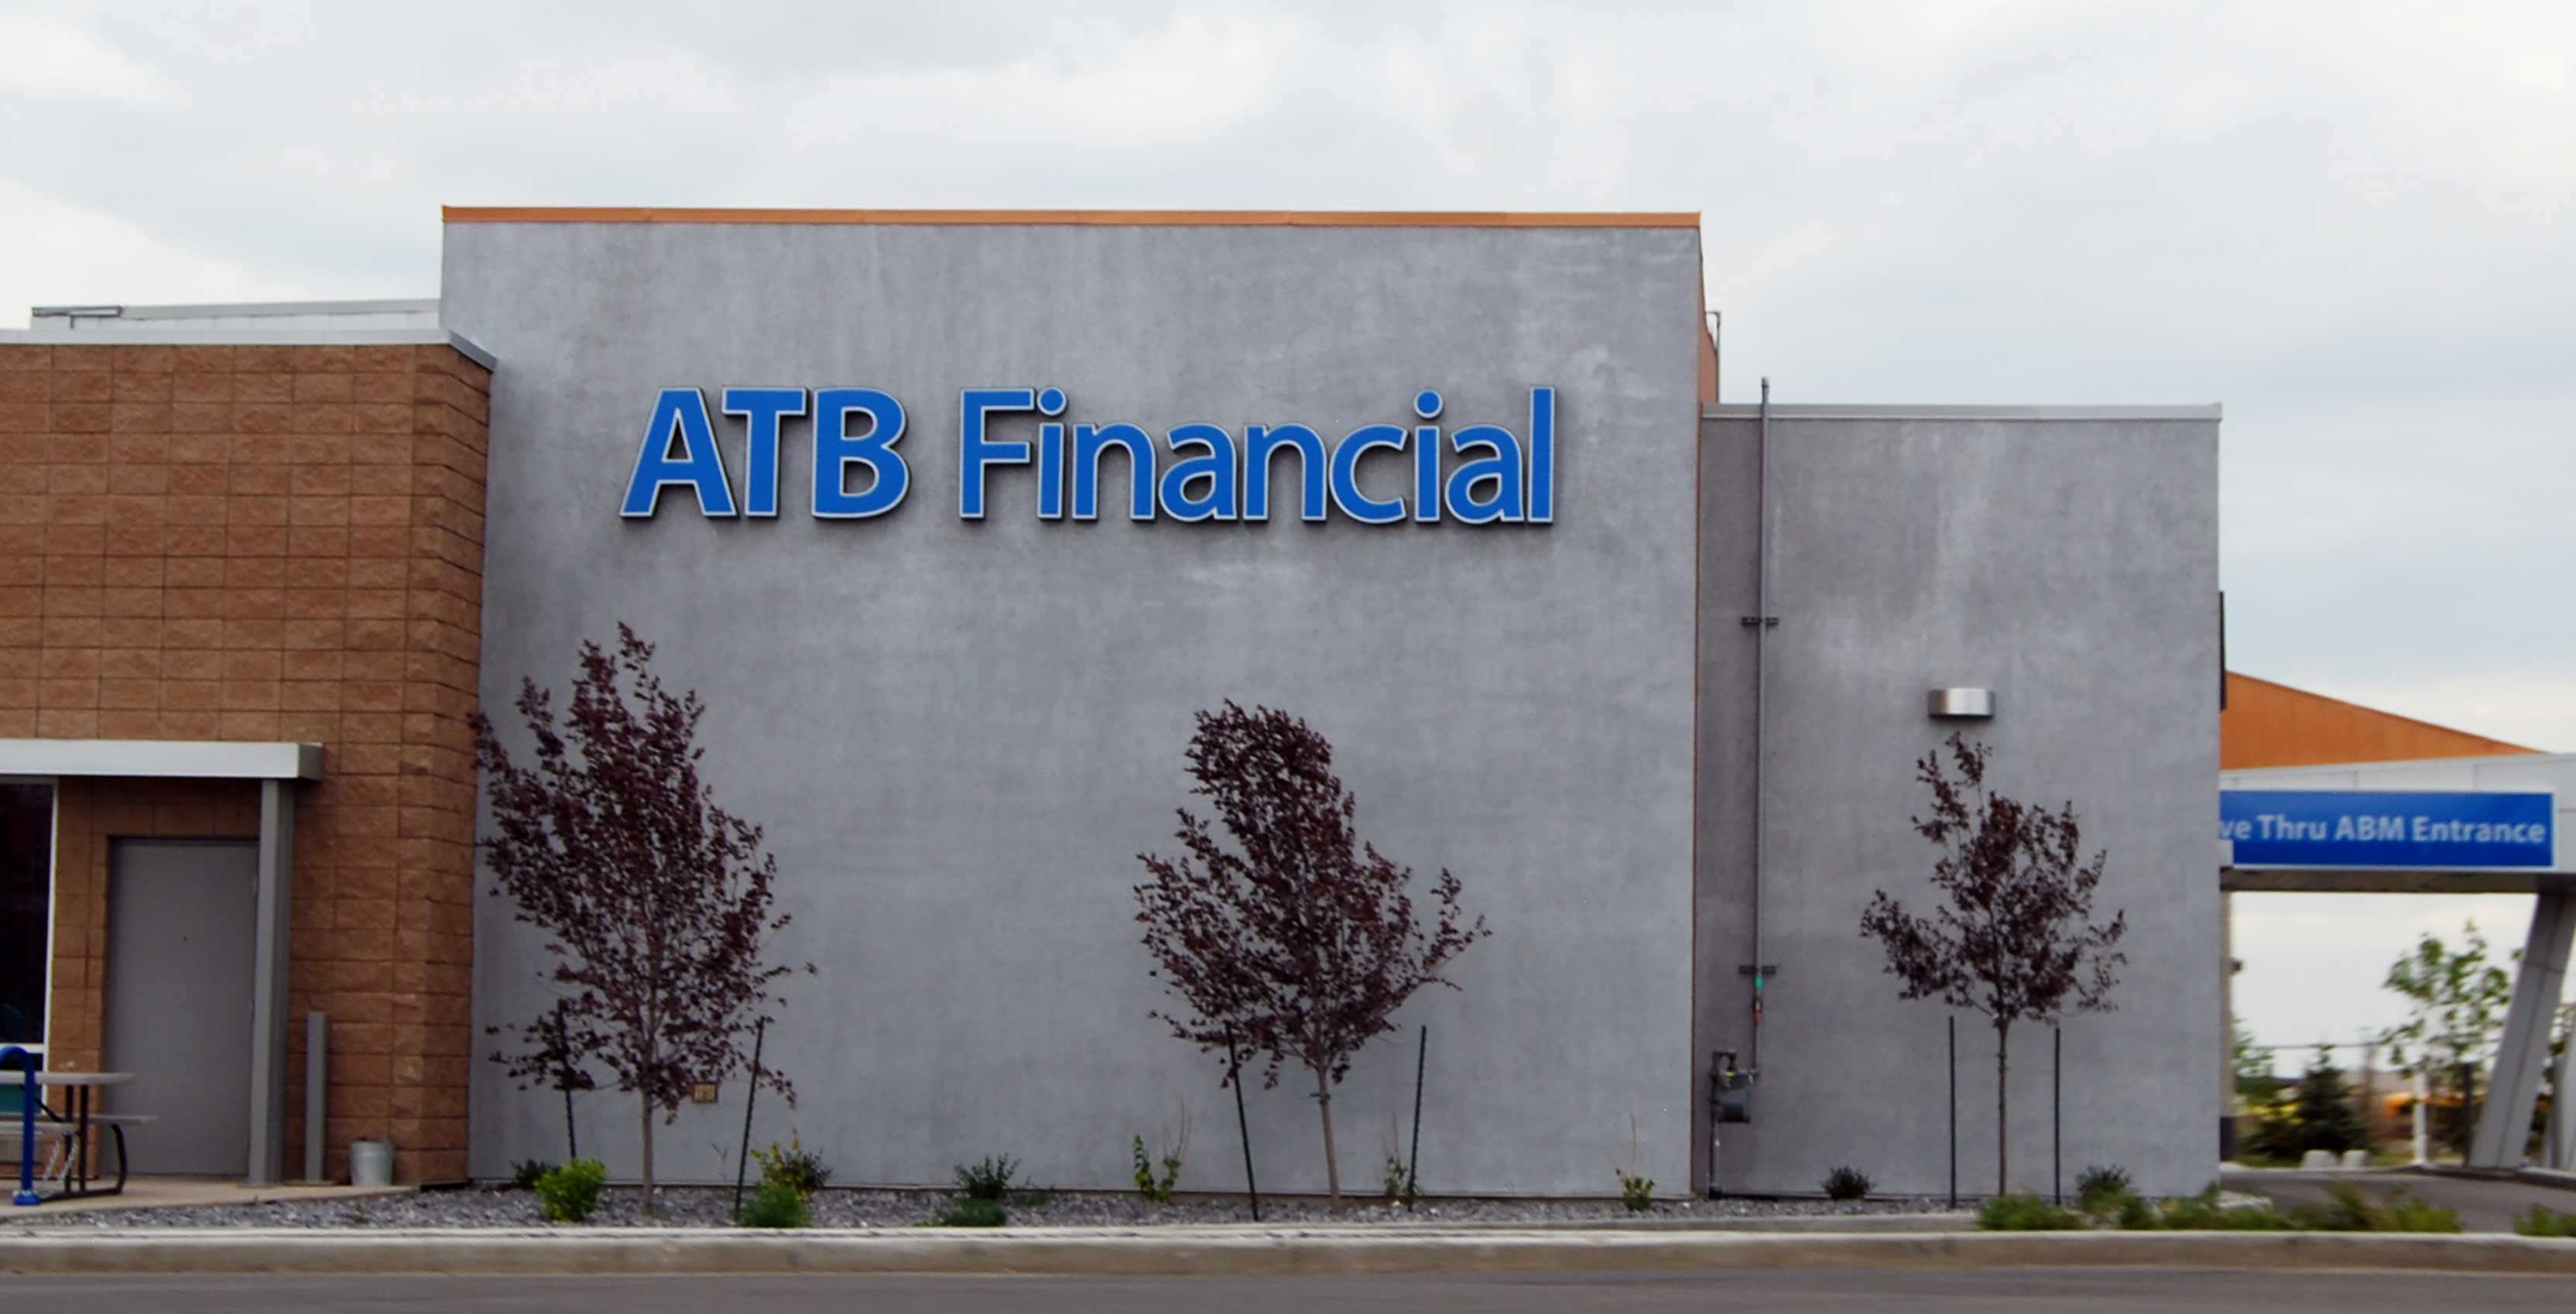 ATB Financial Bank Alberta